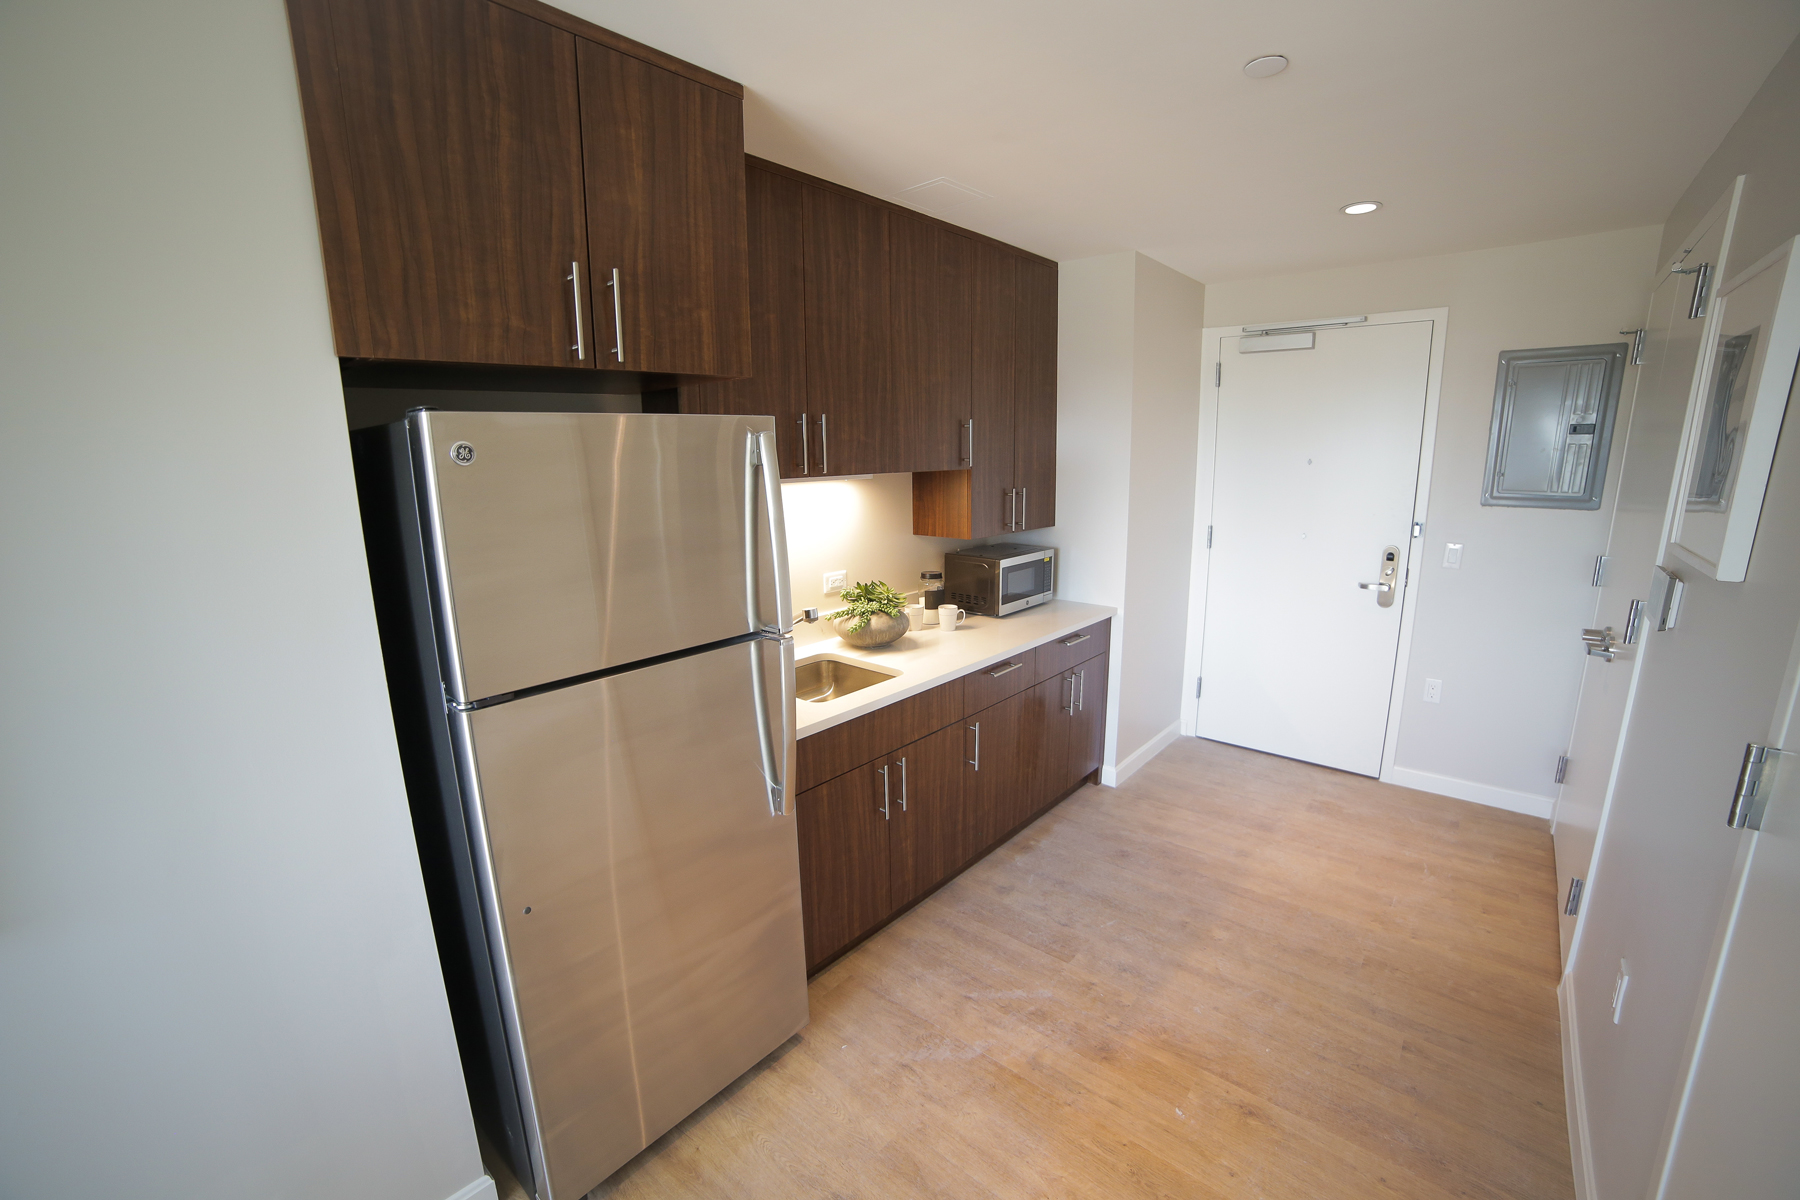 The kitchen of a one-bedroom apartment, featuring stainless steel appliances, hardwood floors, and modern cabinets.